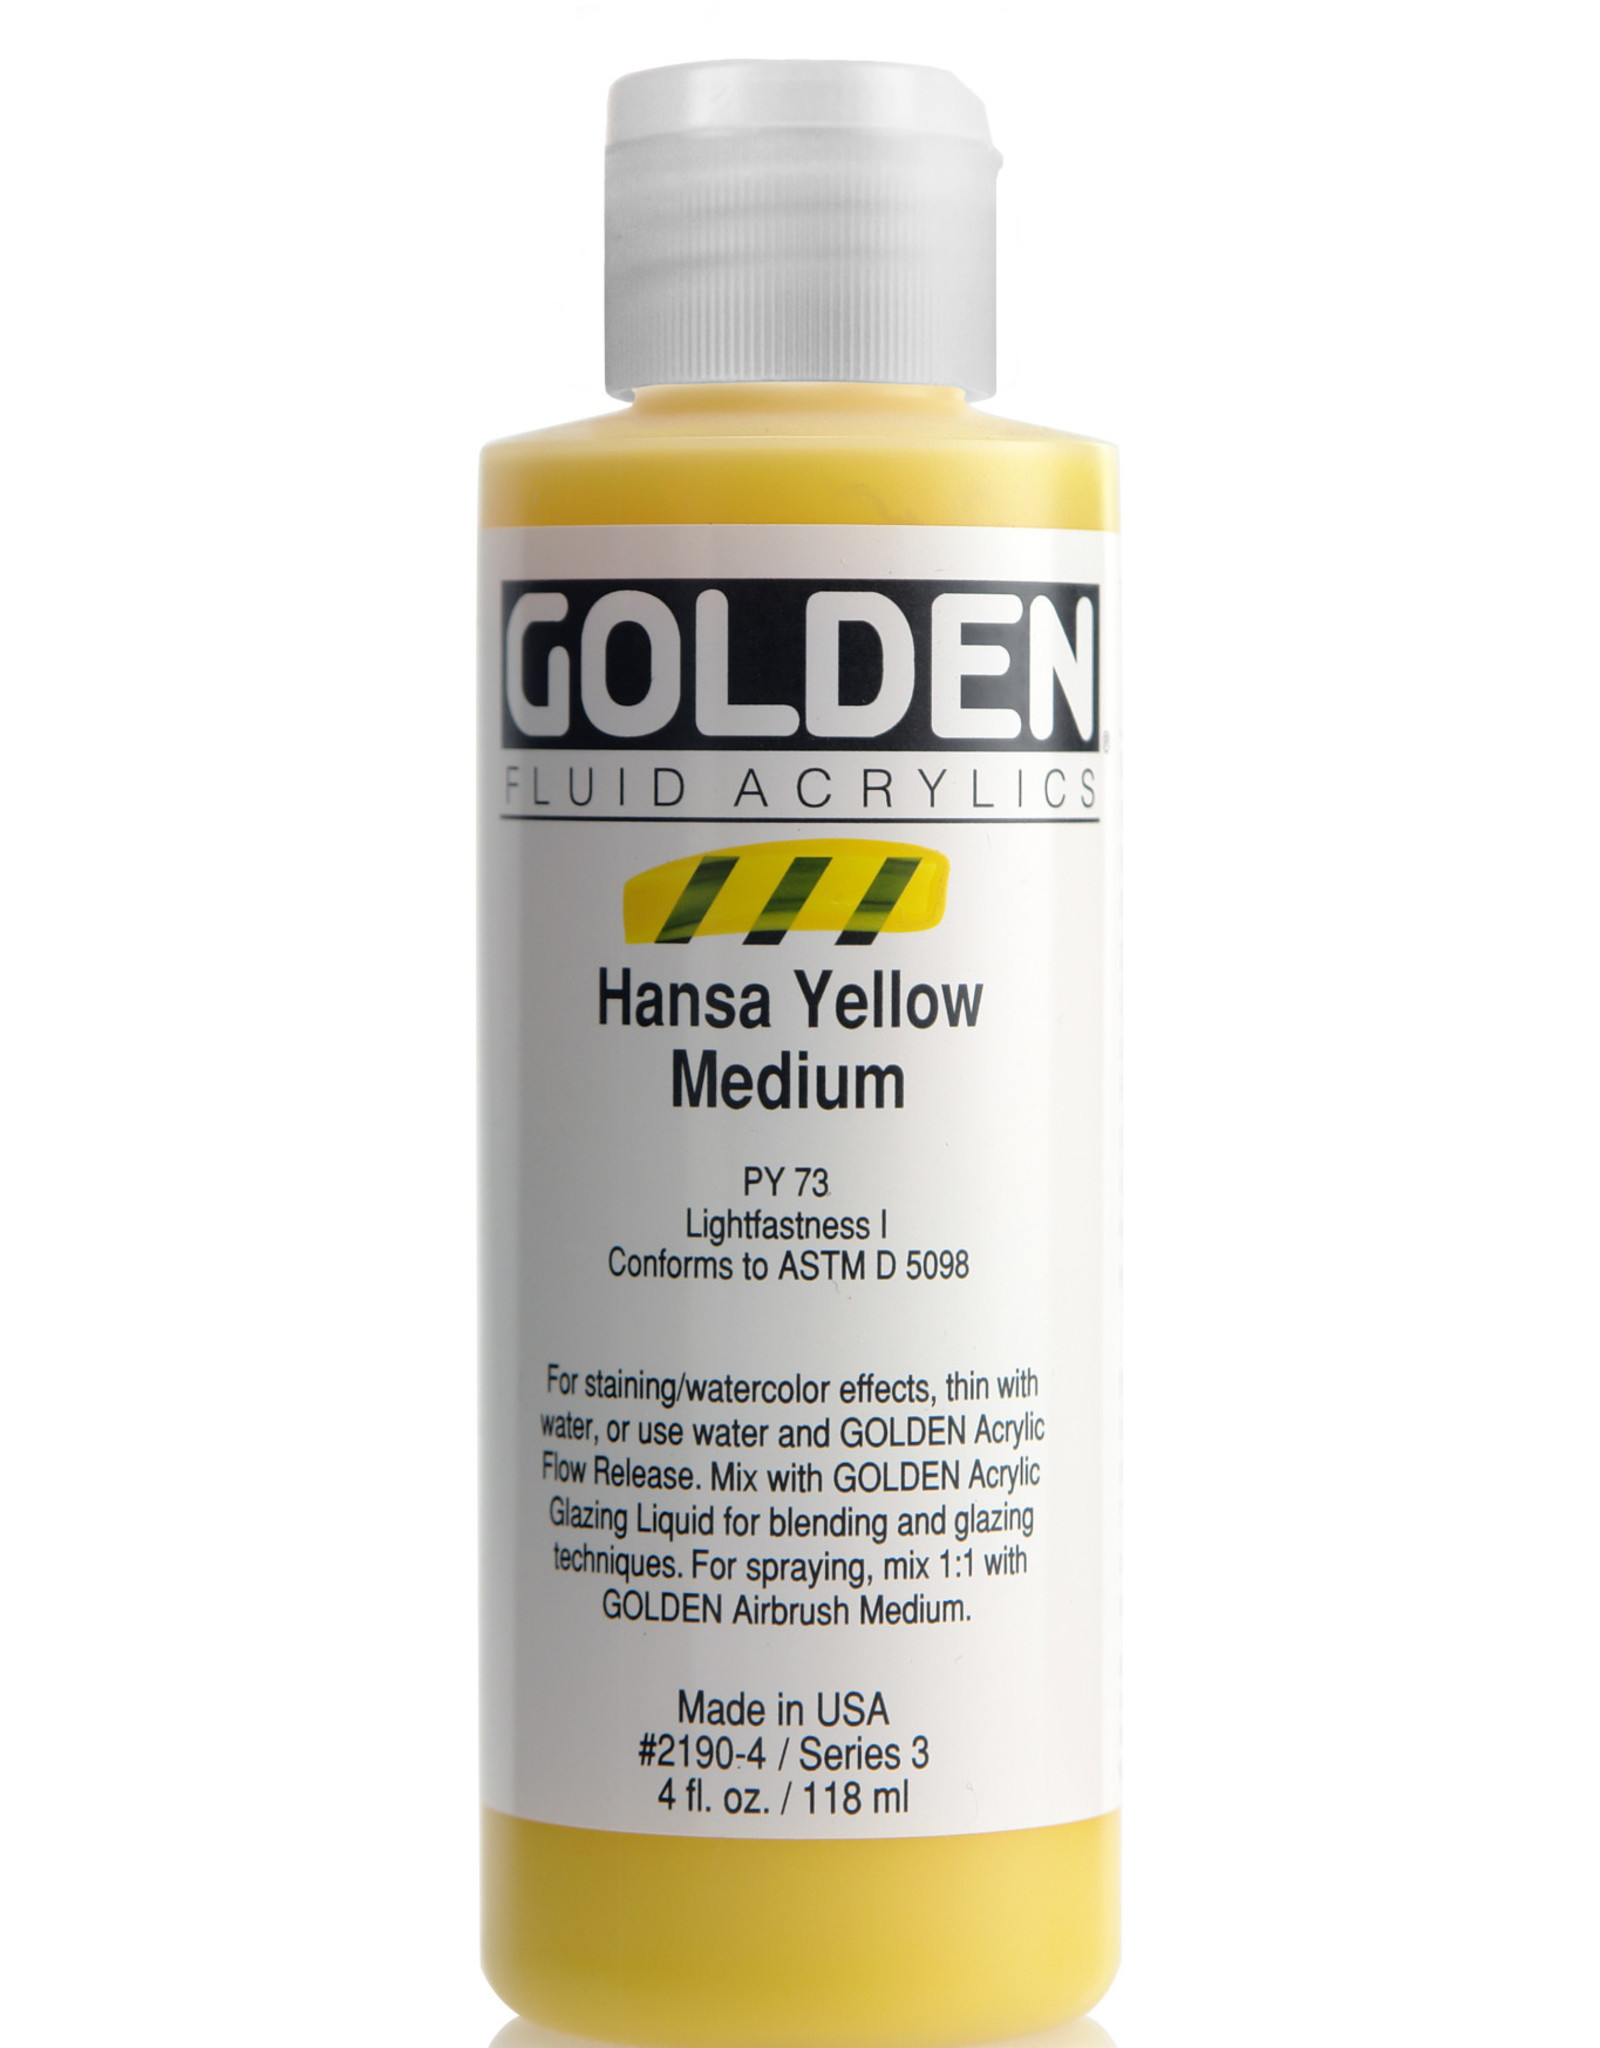 Golden Fluid Acrylic Paint, Hansa Yellow Medium, Series 3, 4fl.oz, Bottle